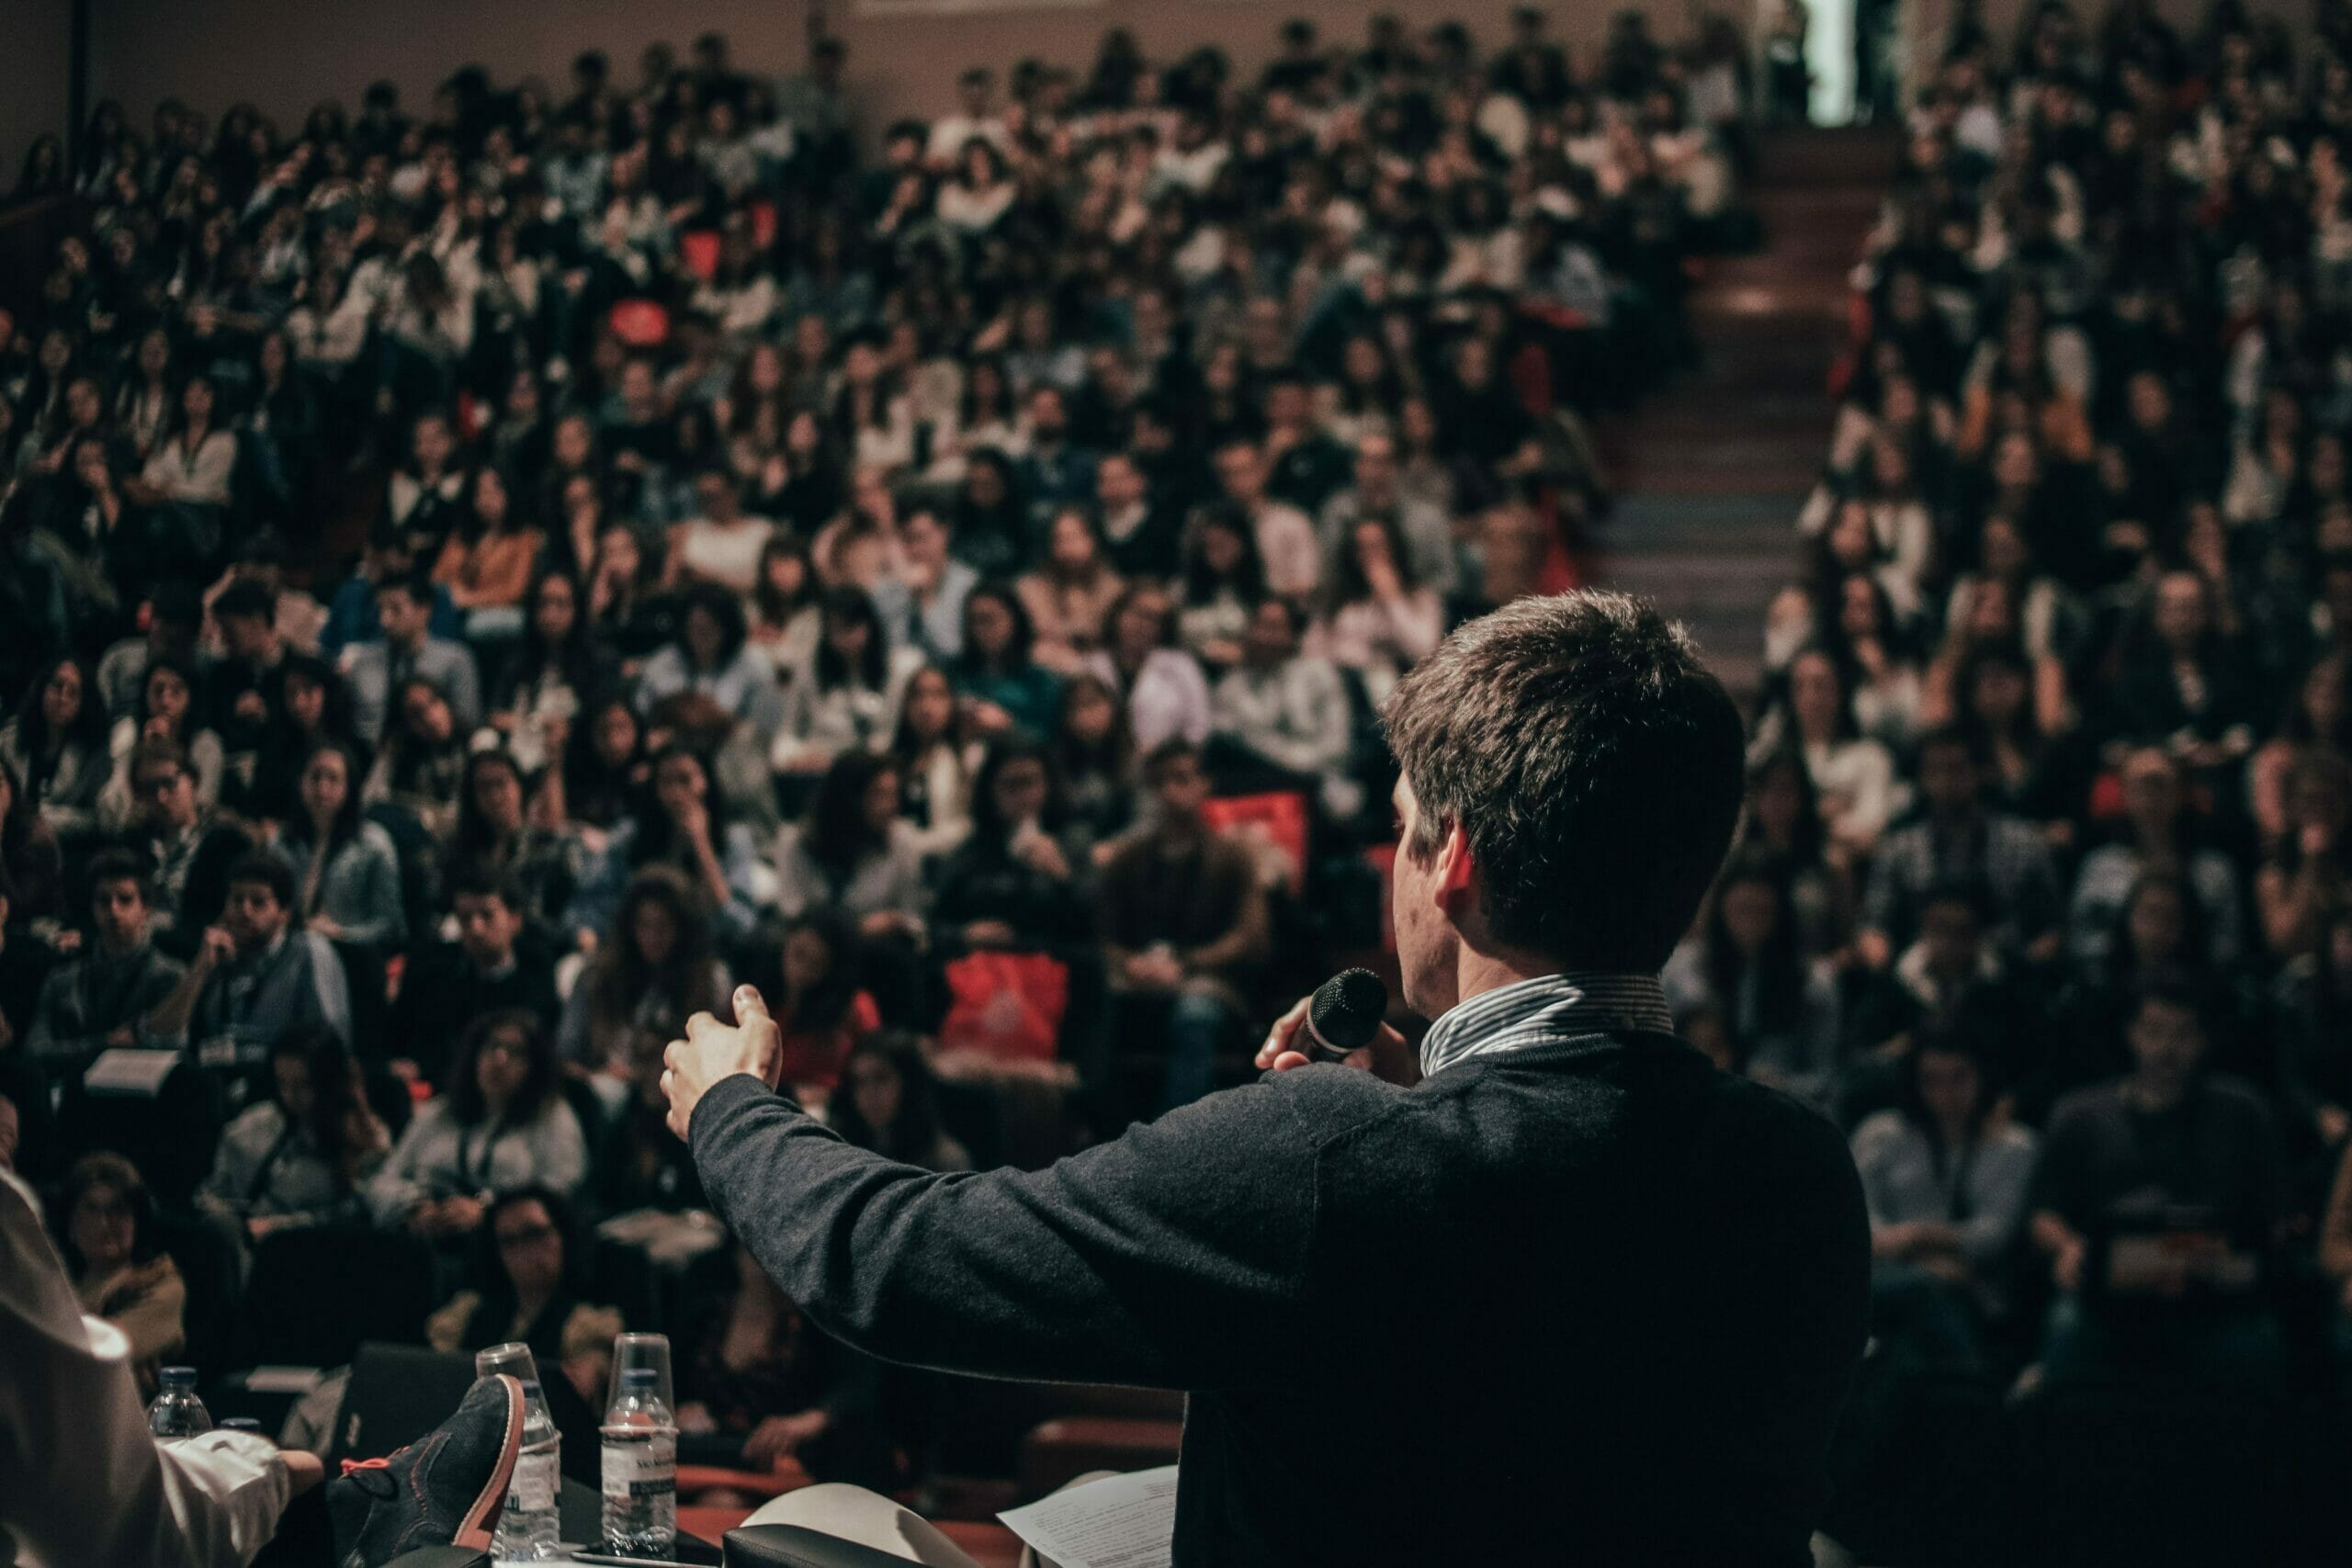 How to Build an Audience That (Actually) Cares: 7 Honest Tips via @allamericanatlas